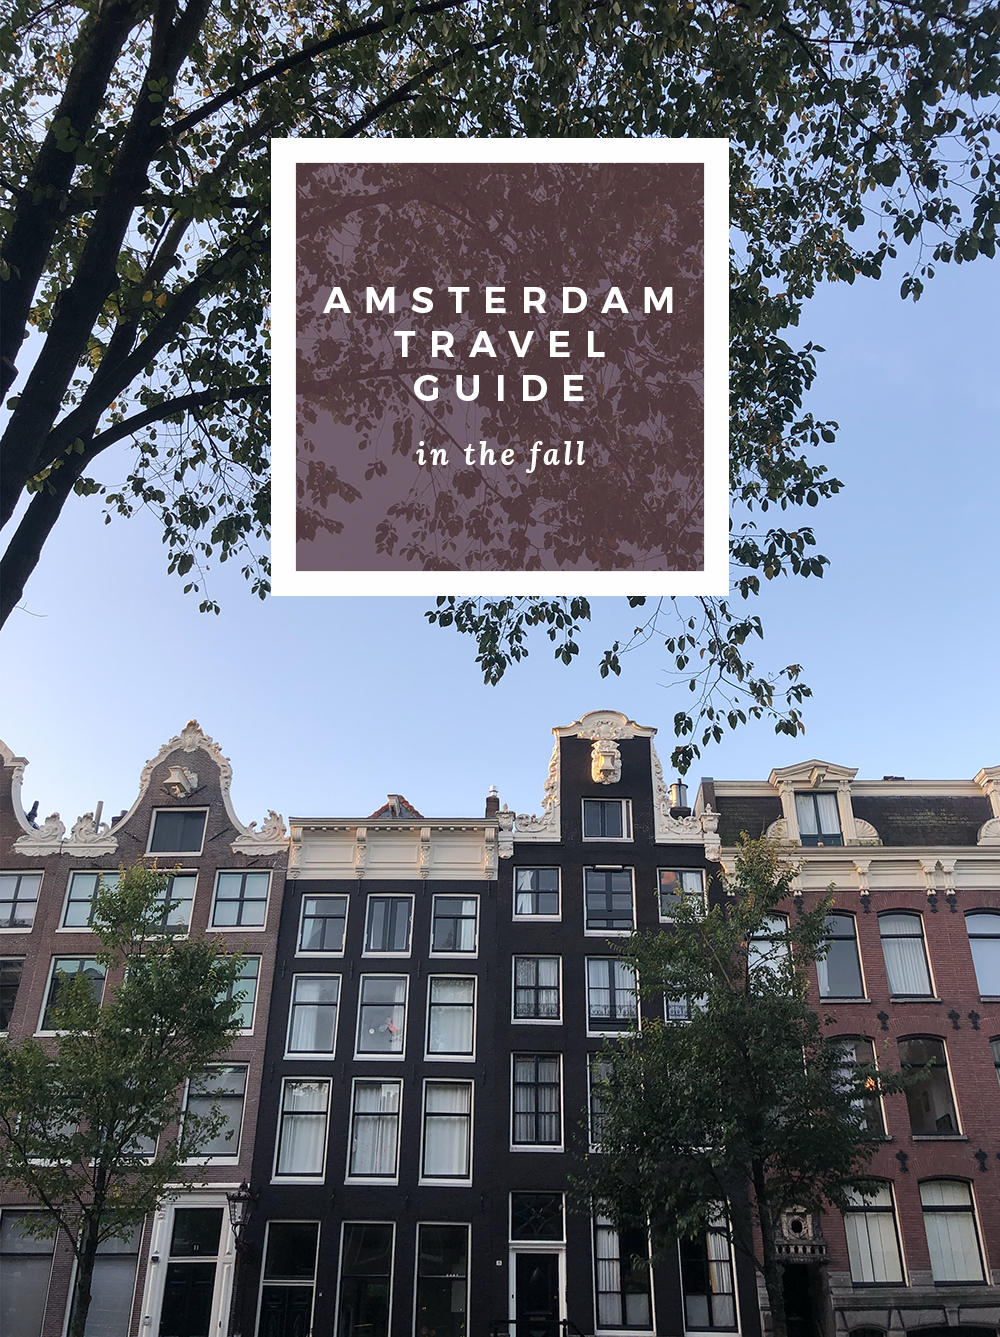 Amsterdam Travel Guide - roomfortuesday.com